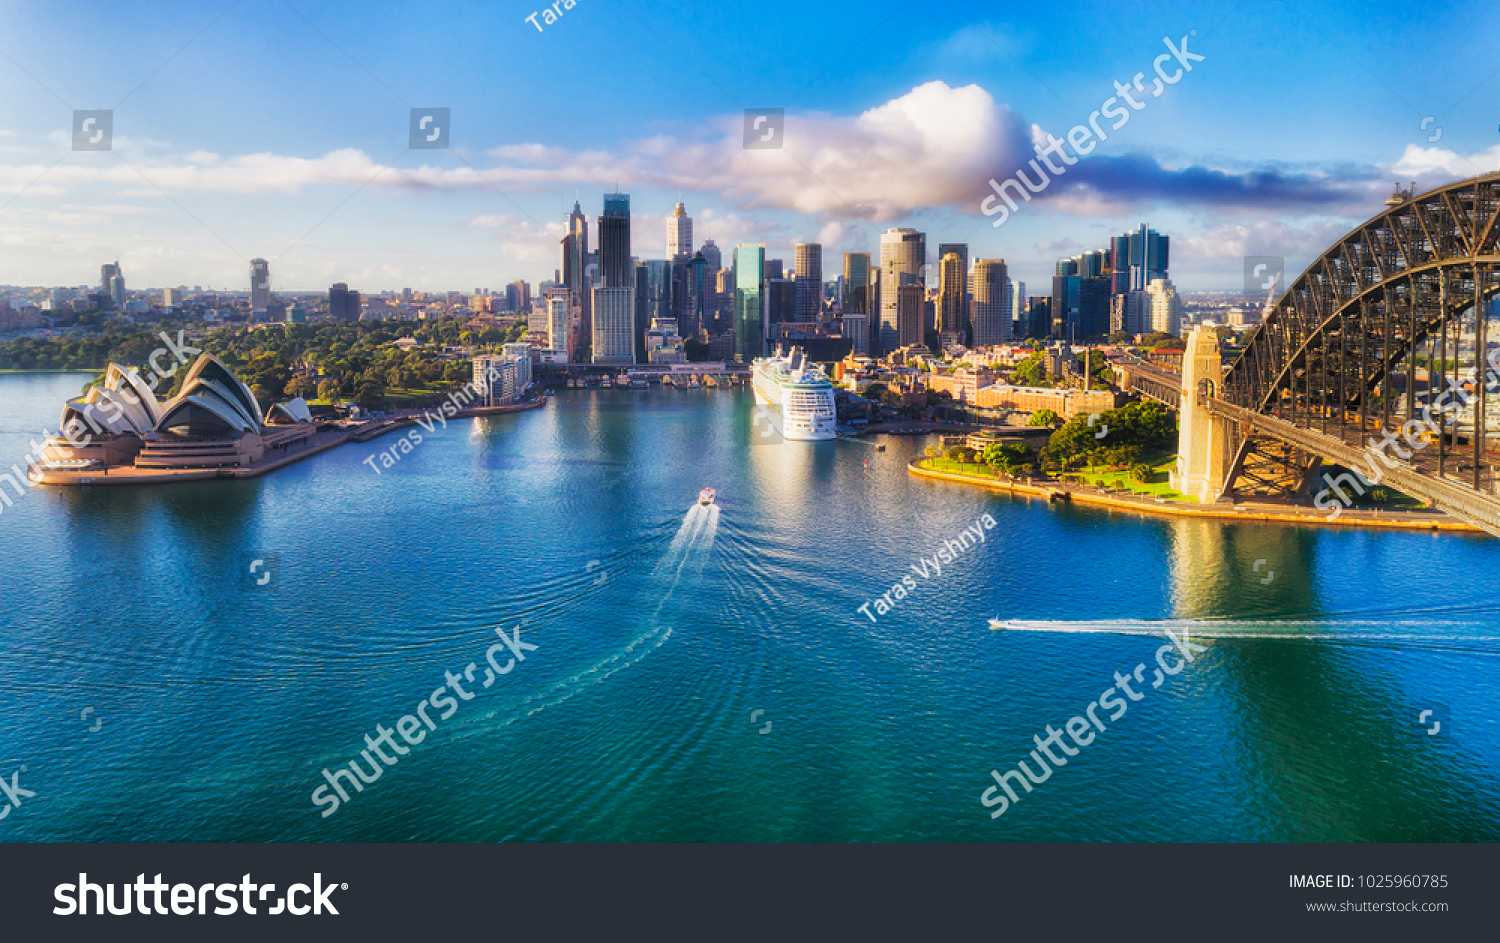 Major architecture landmarks of the city of Sydney and Australia around Sydney harbour in elevated aerial view in warm smooth sunlight at the morning. #1025960785